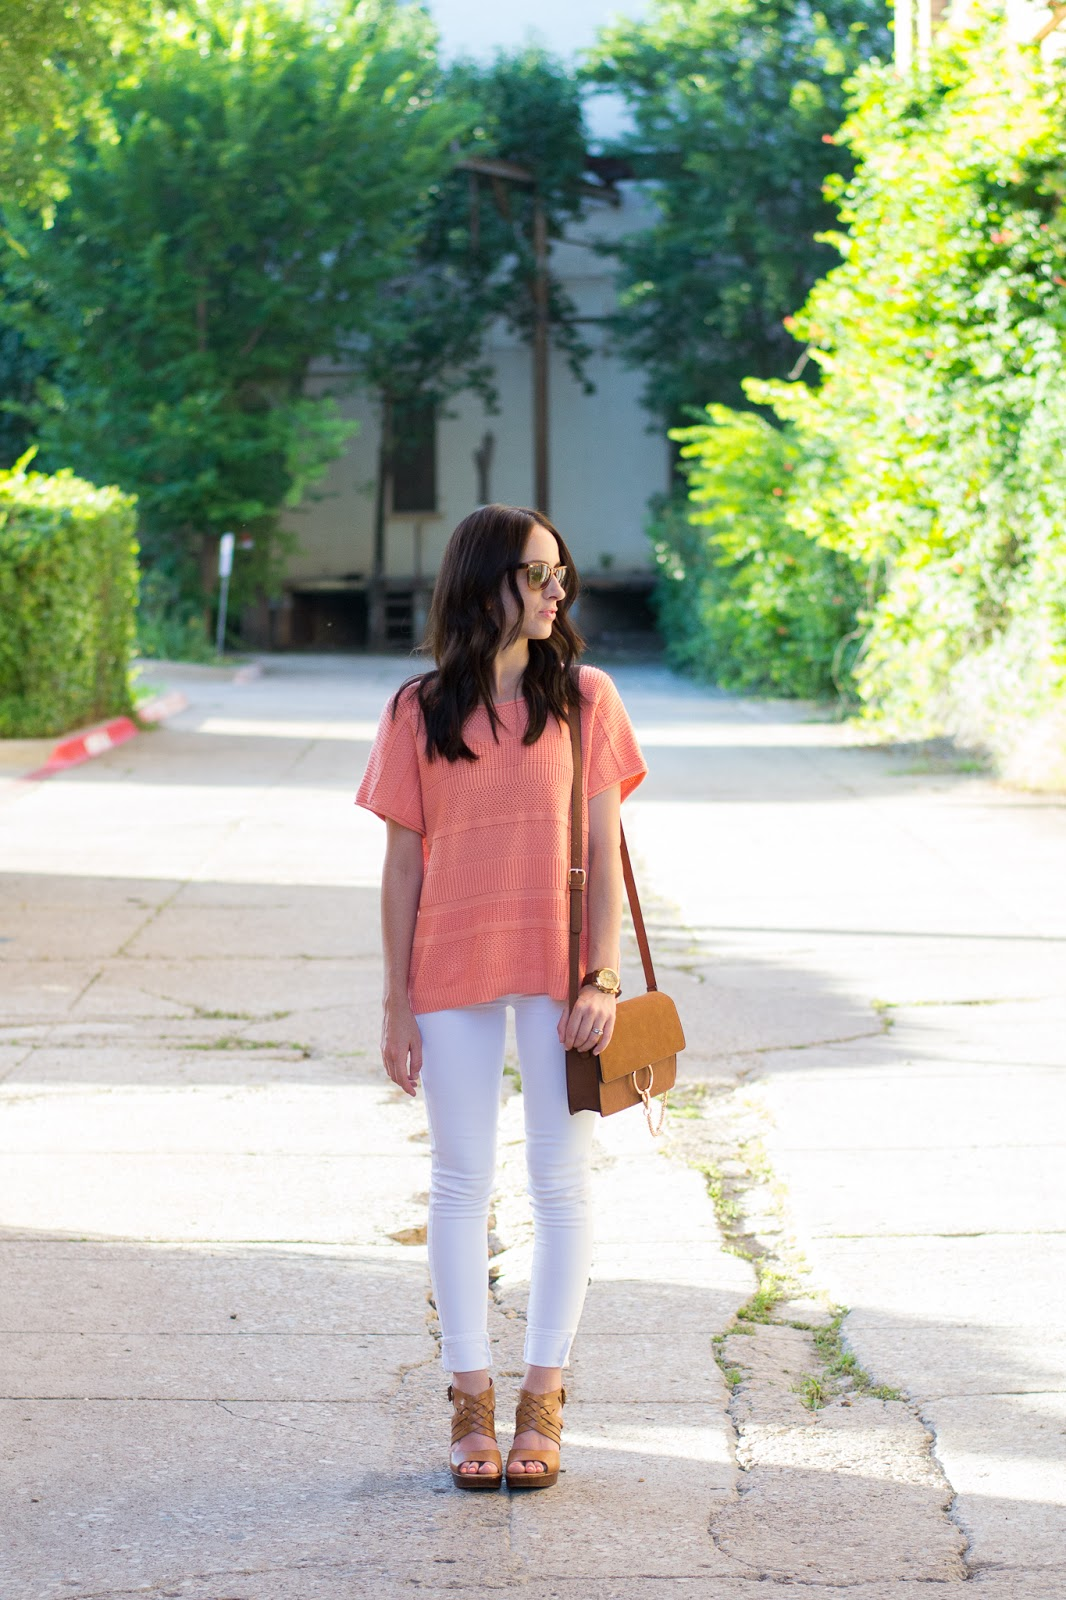 Summer day look with white jeans, coral top and platform sandals